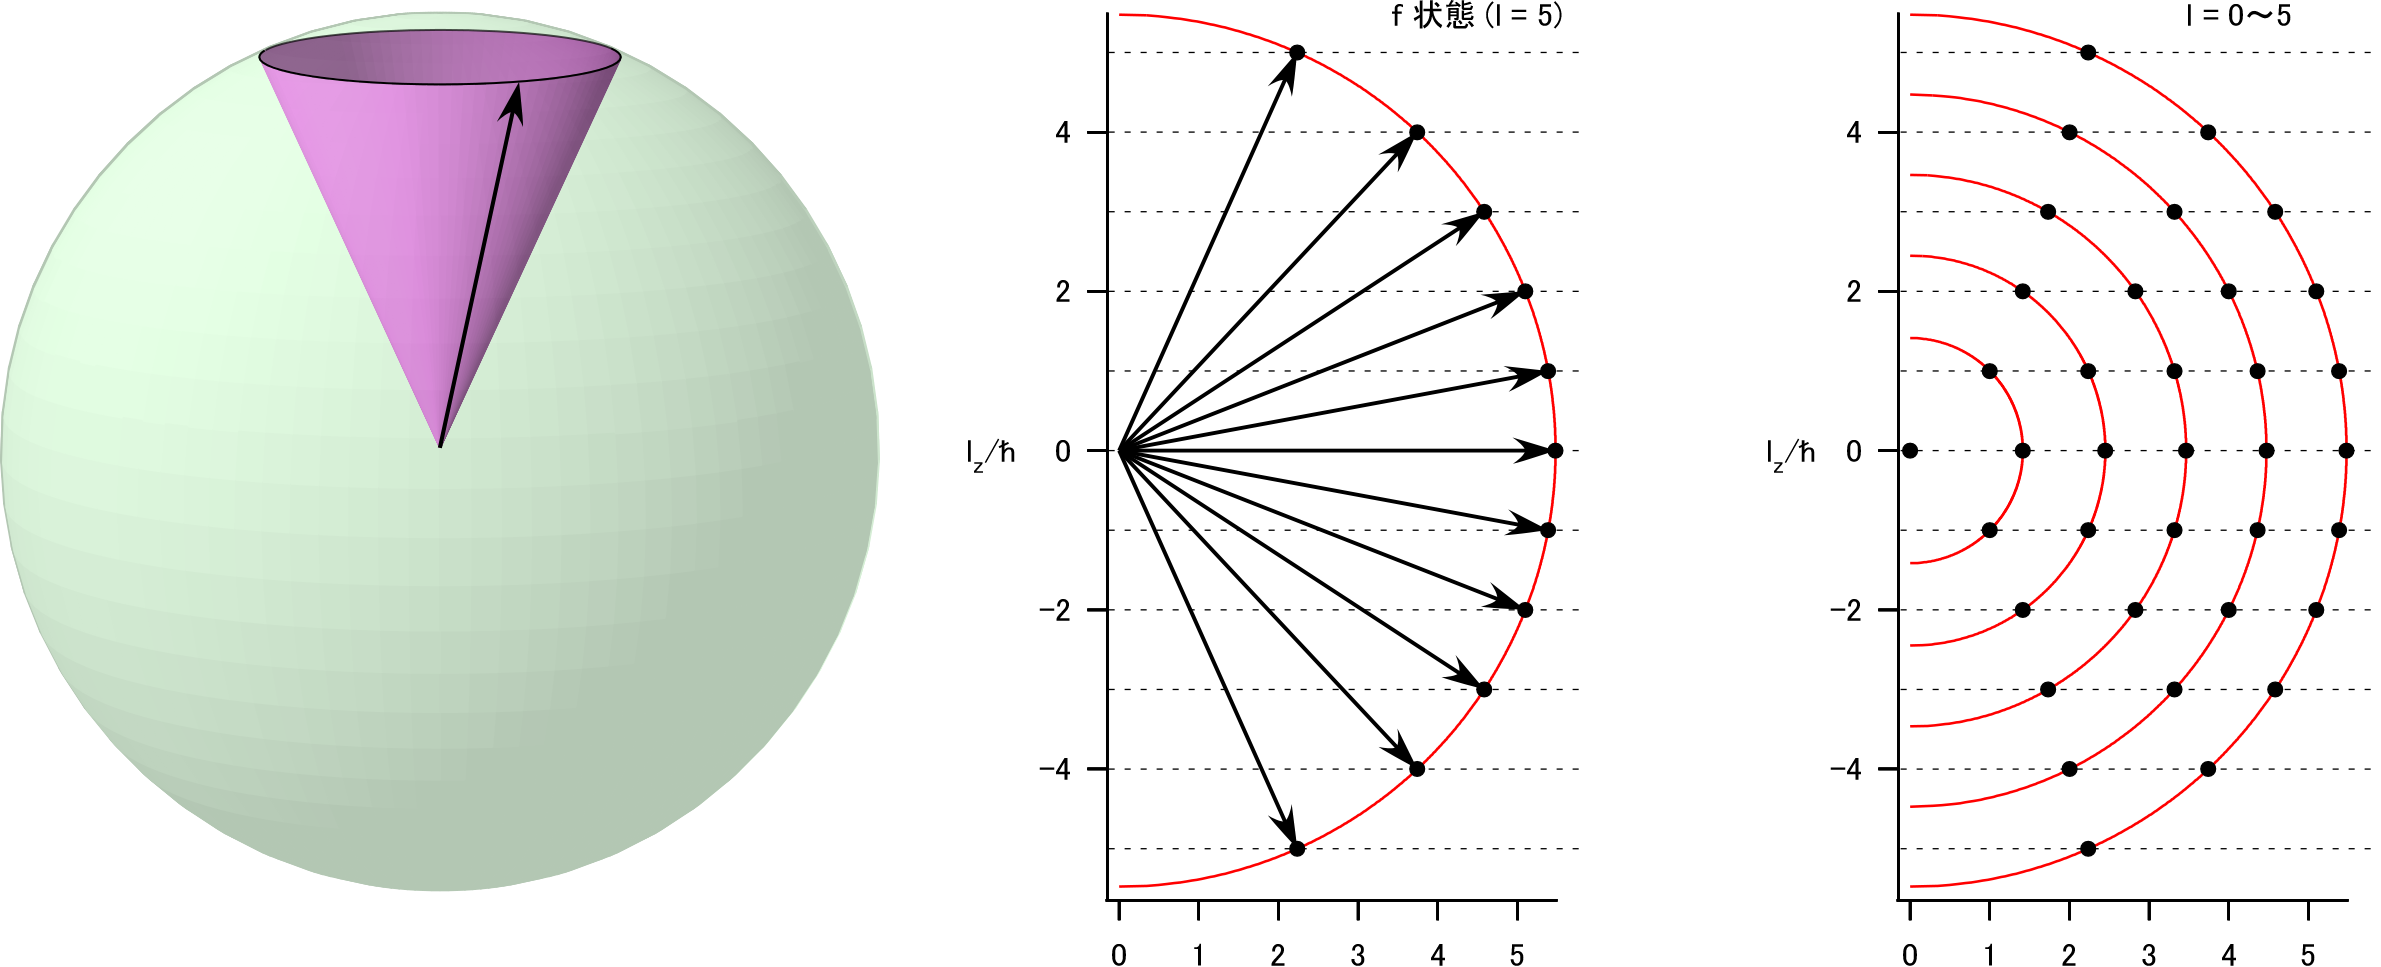 spherical-harmonics-angular-momentum.png